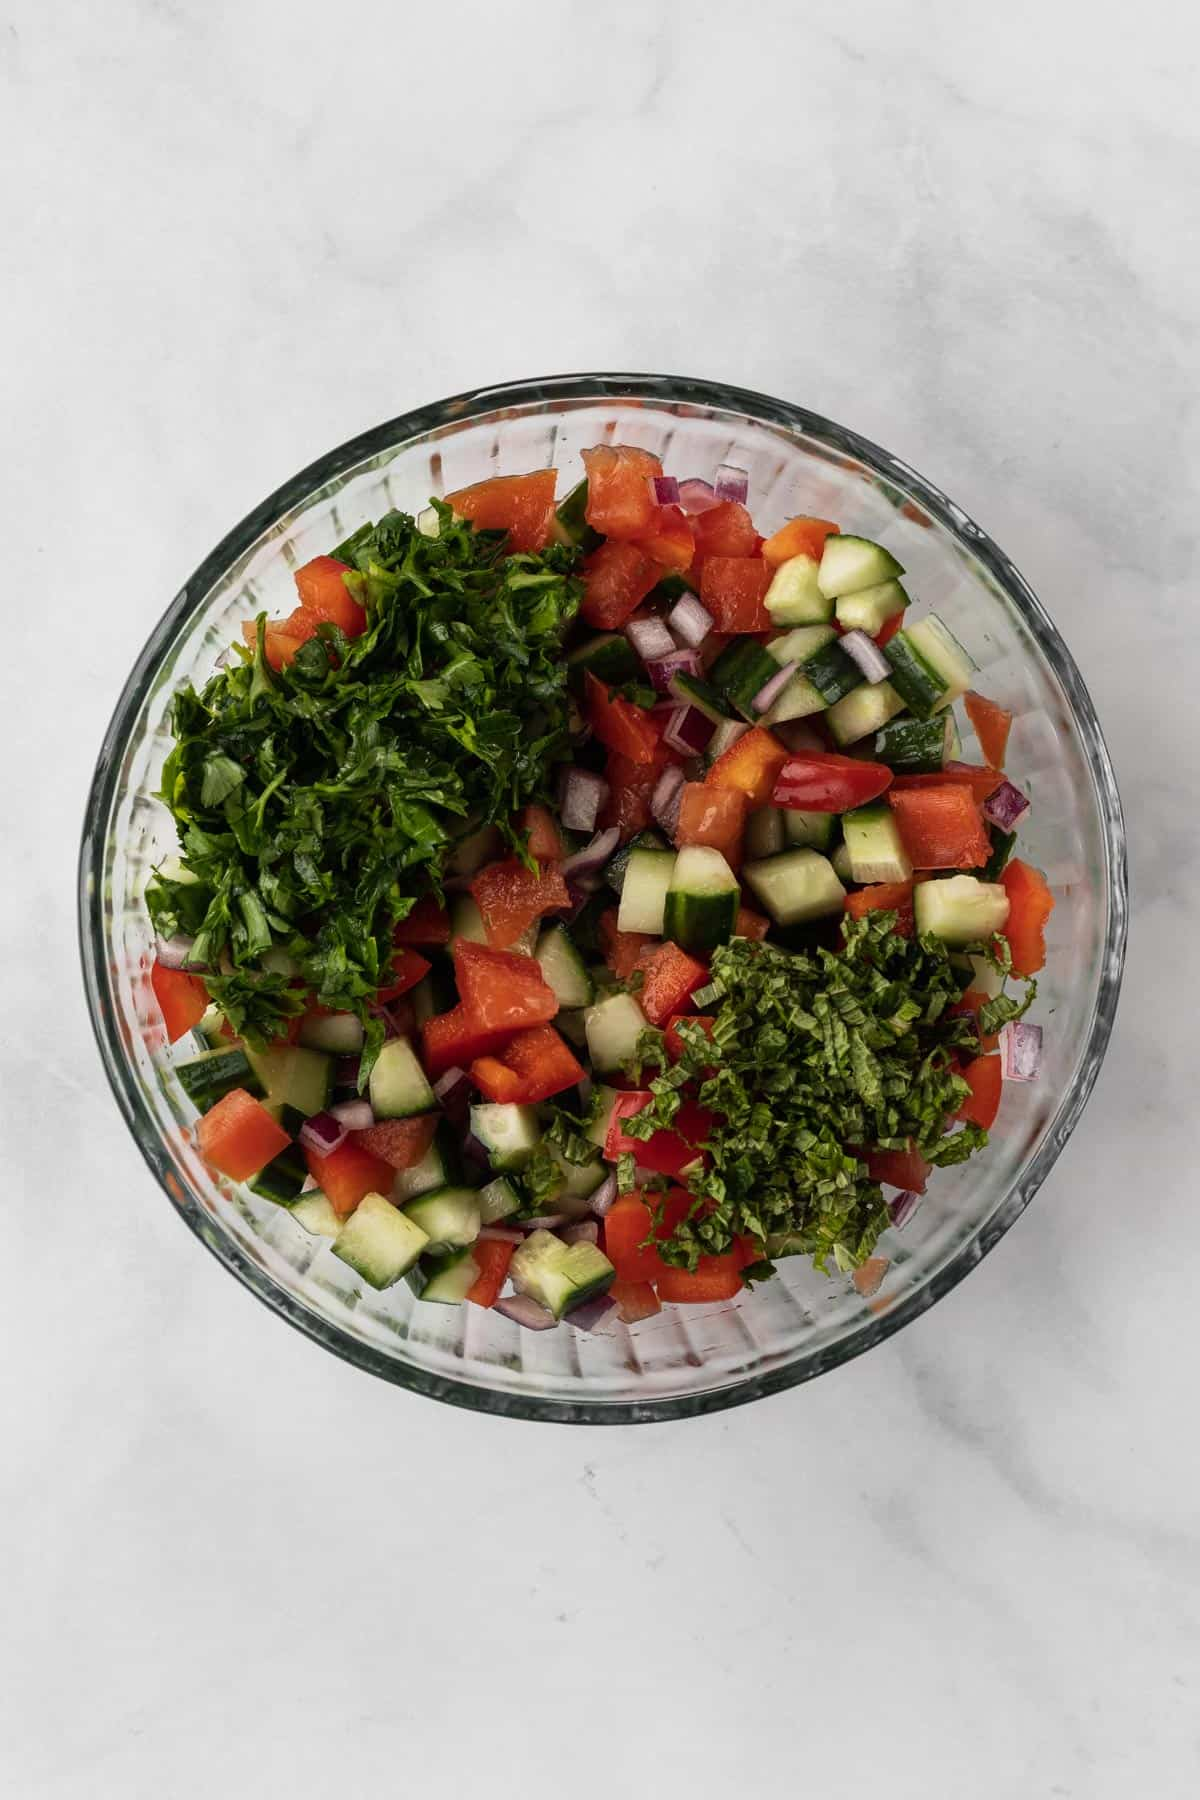 All of the ingredients for israeli salad in a glass bowl.